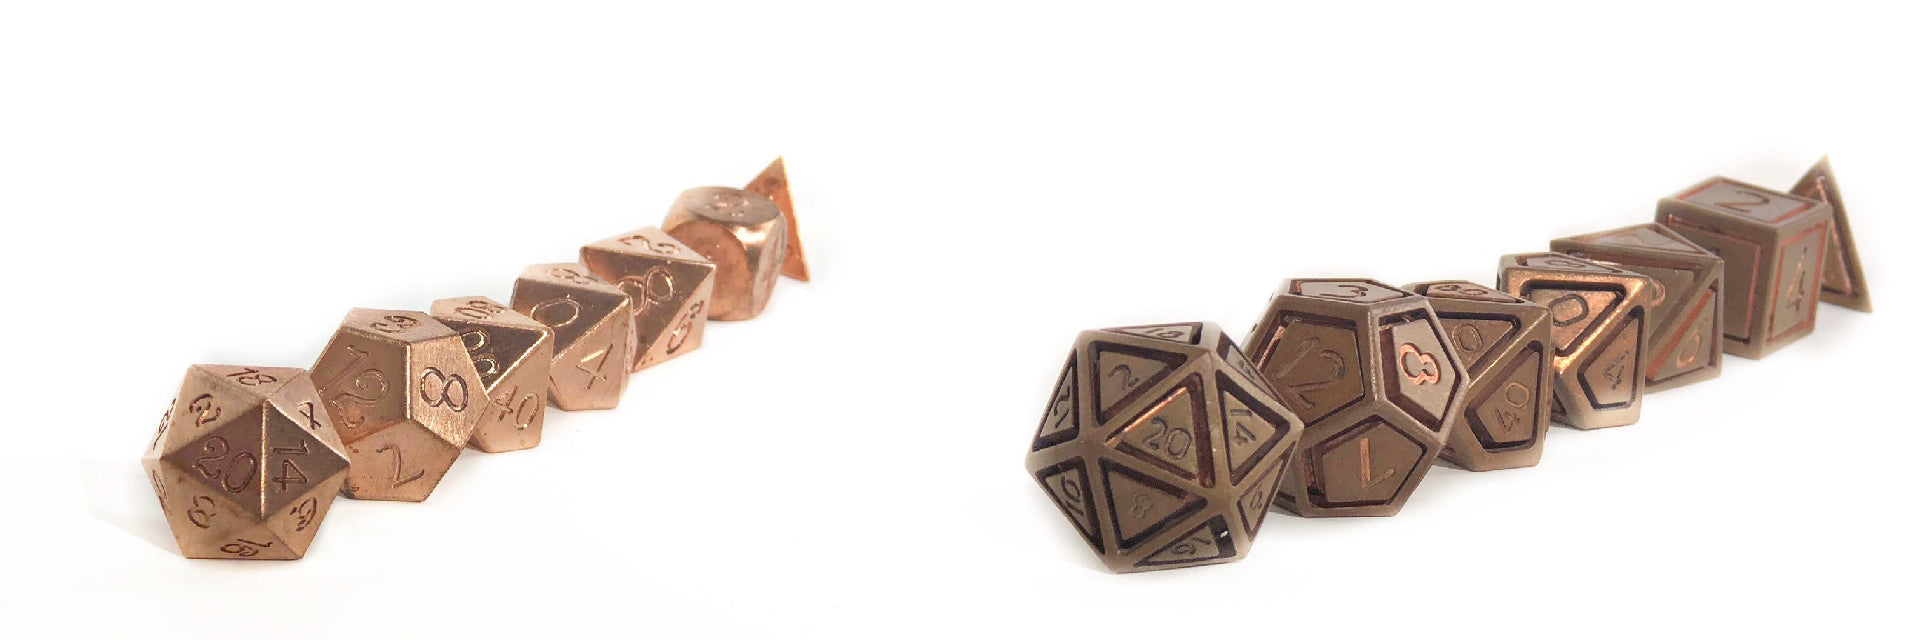 Solid copper set and caged copper set